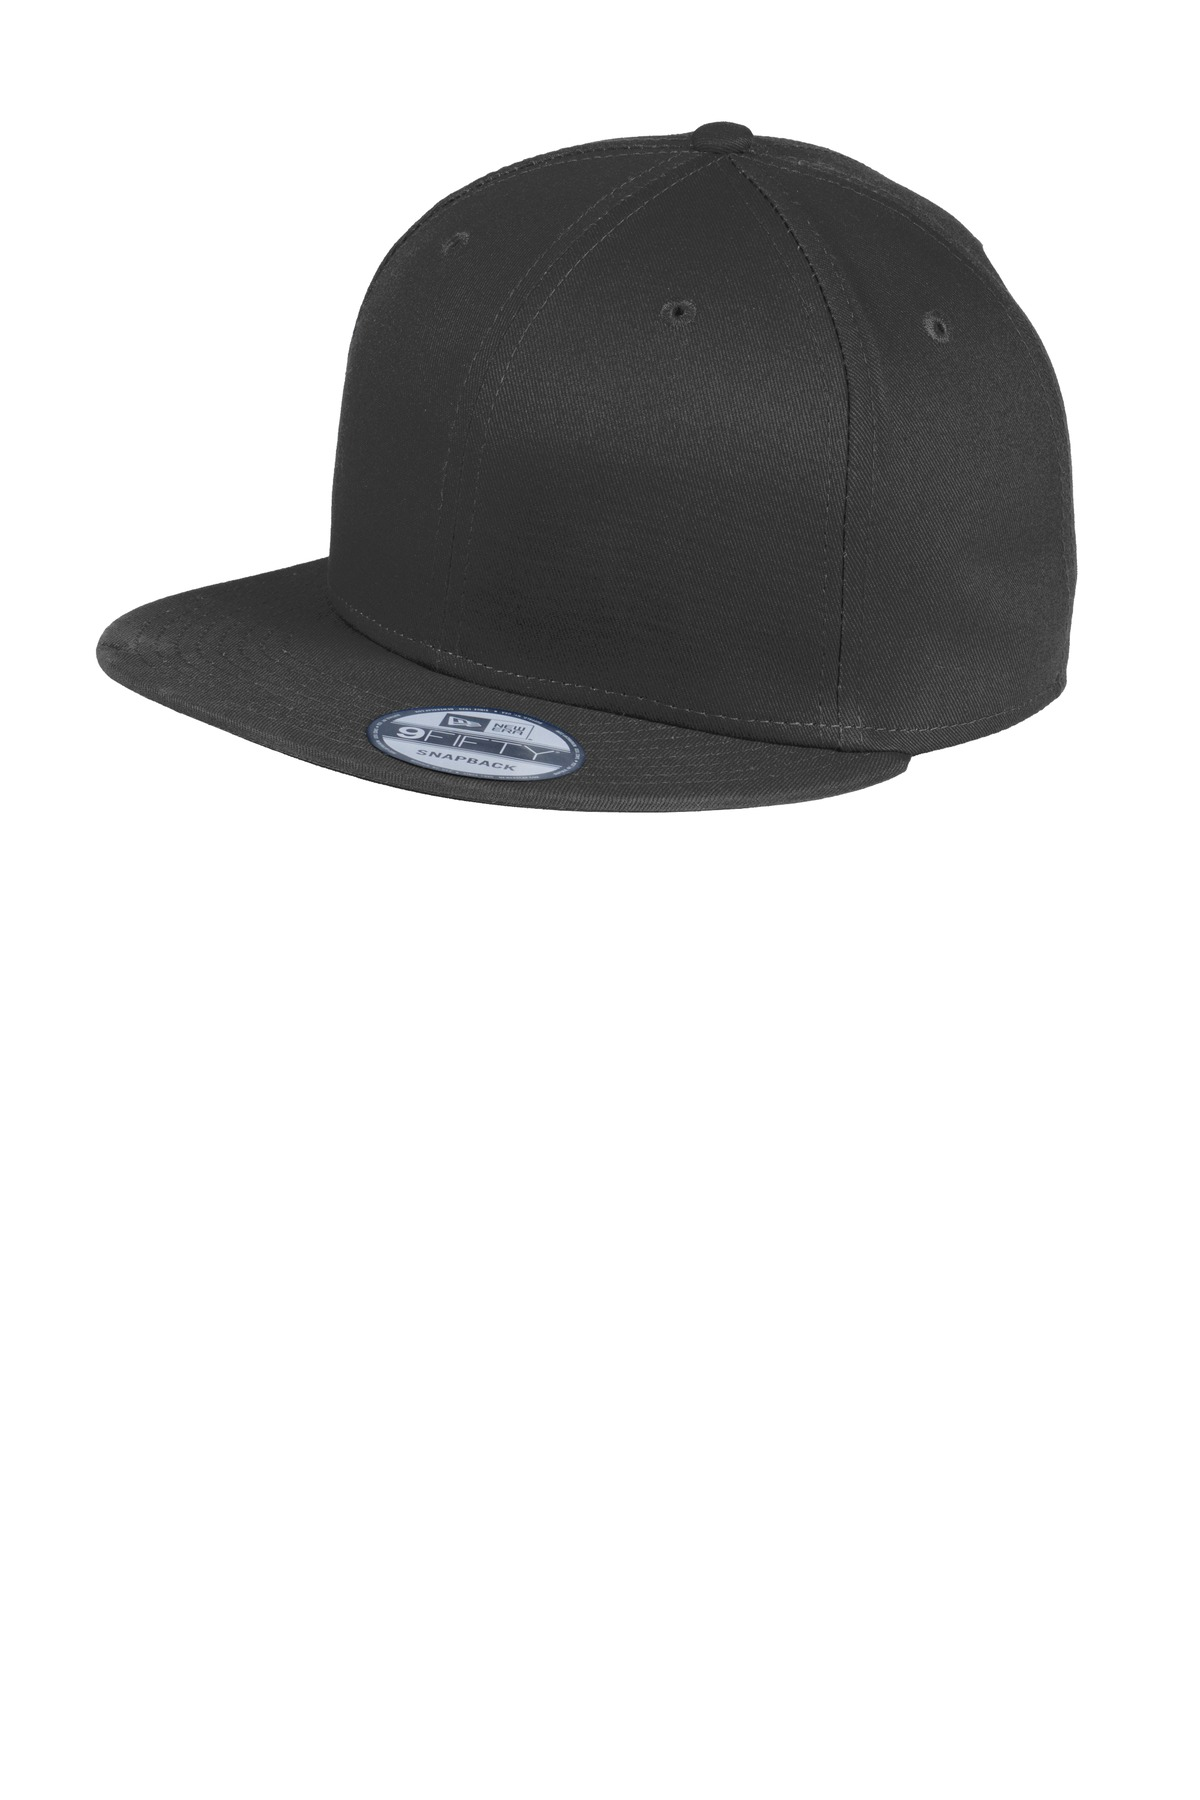 New Era ®  - Flat Bill Snapback Cap. NE400 - Black